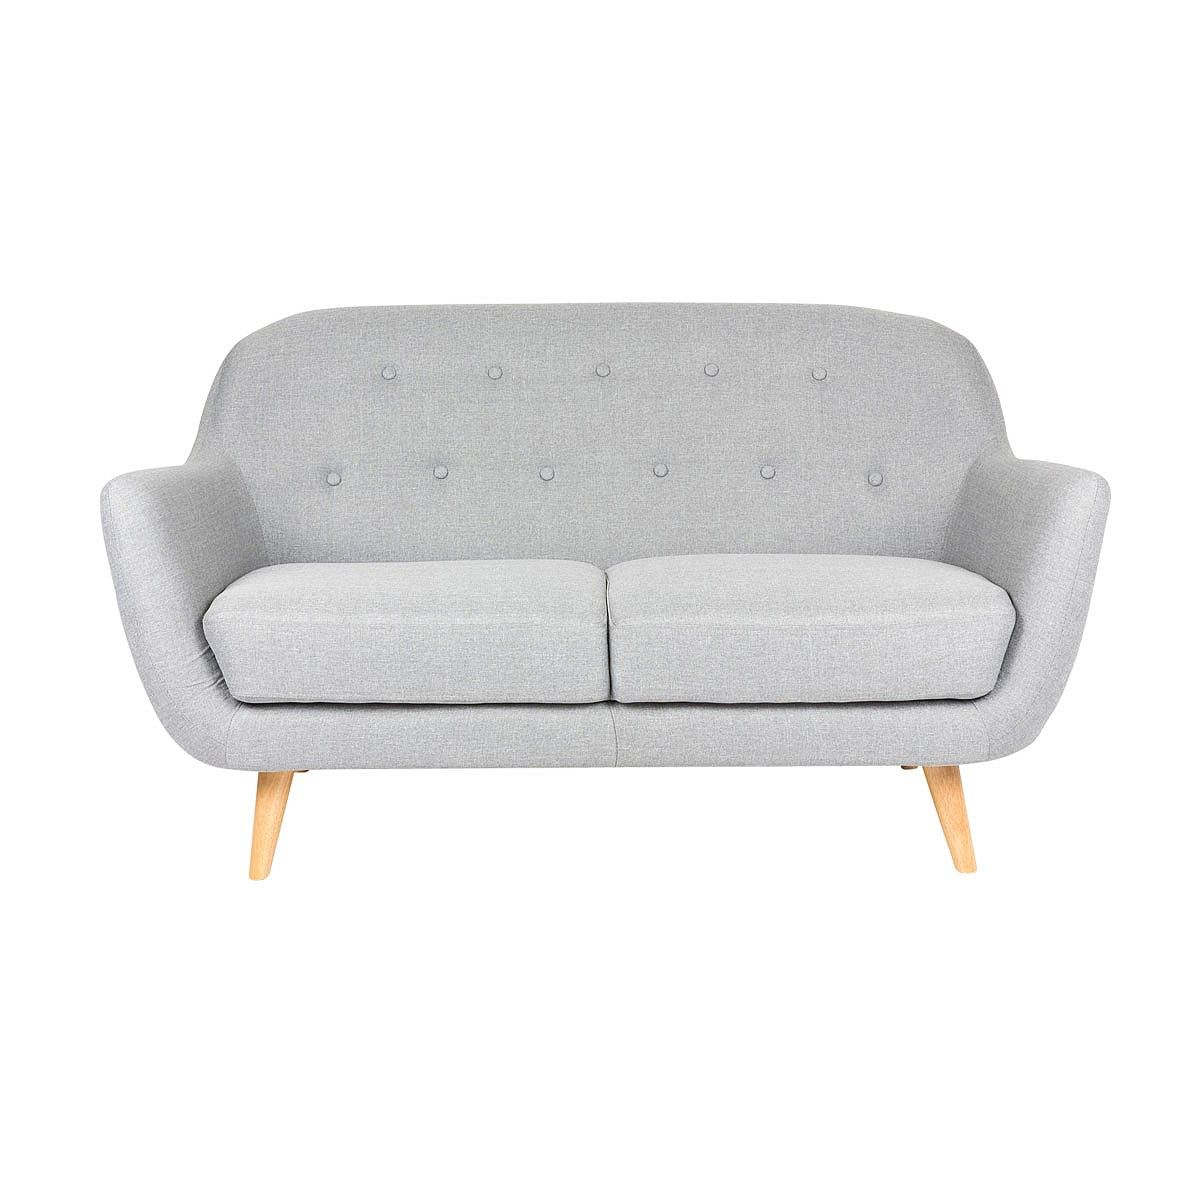 Lucia 2 Seater Sofa Light Grey Sofas Living Nood Nz Gray Sofa Living Sofas Light Gray Sofas